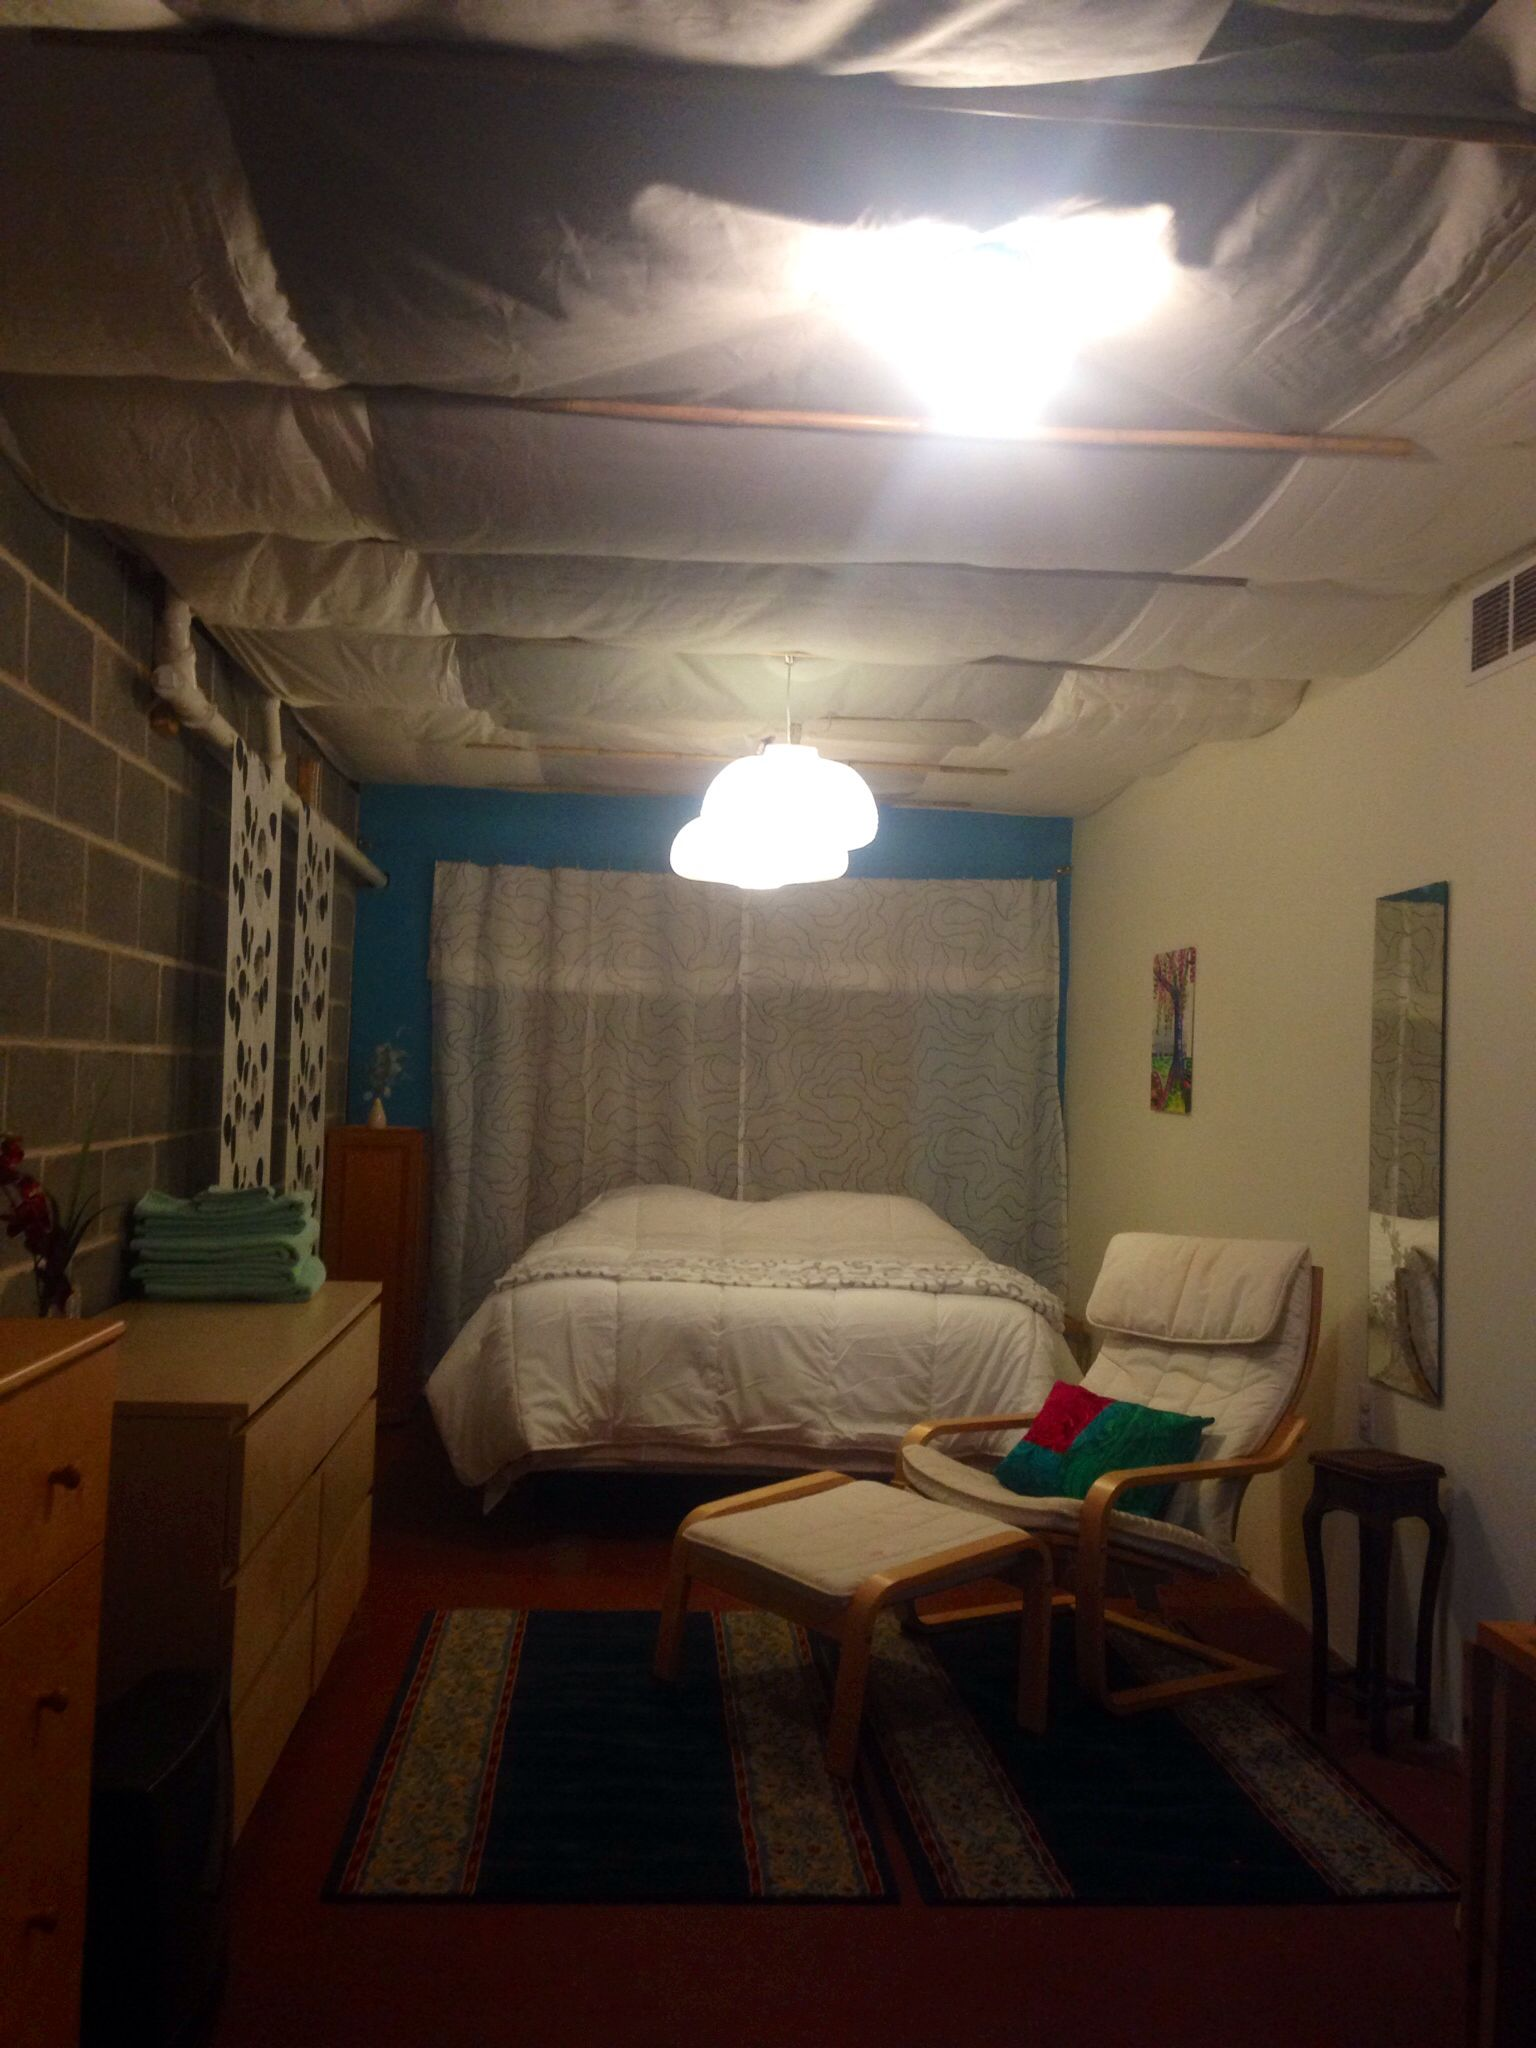 DIY Basement Ceiling. Cover With Sheets And Staple To